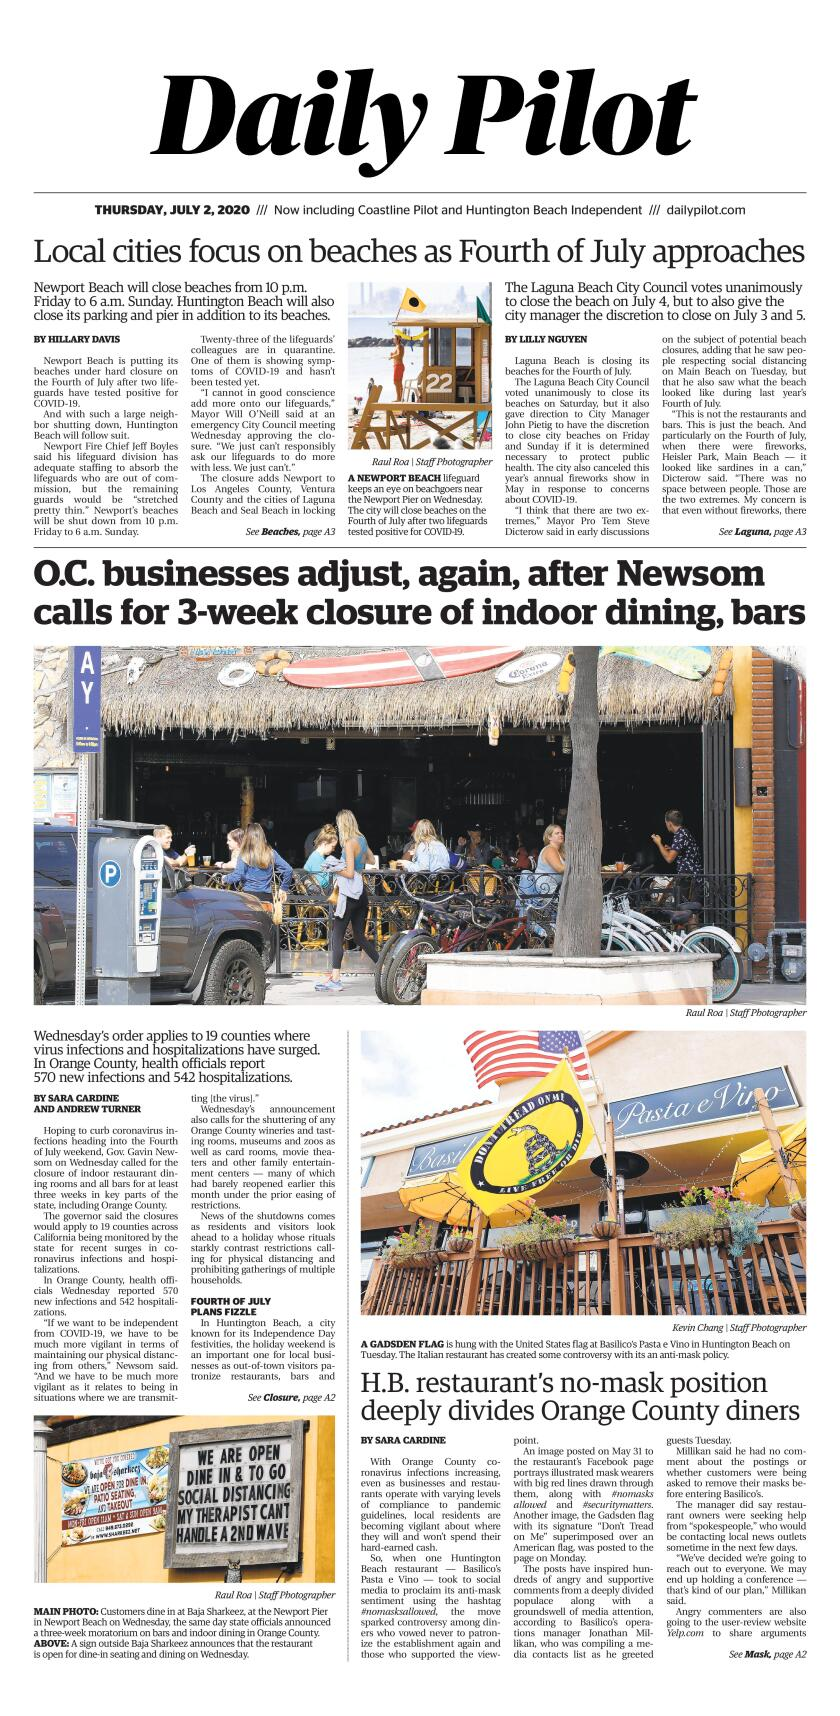 Daily Pilot e-Newspaper: Thursday, July 2, 2020 Cover